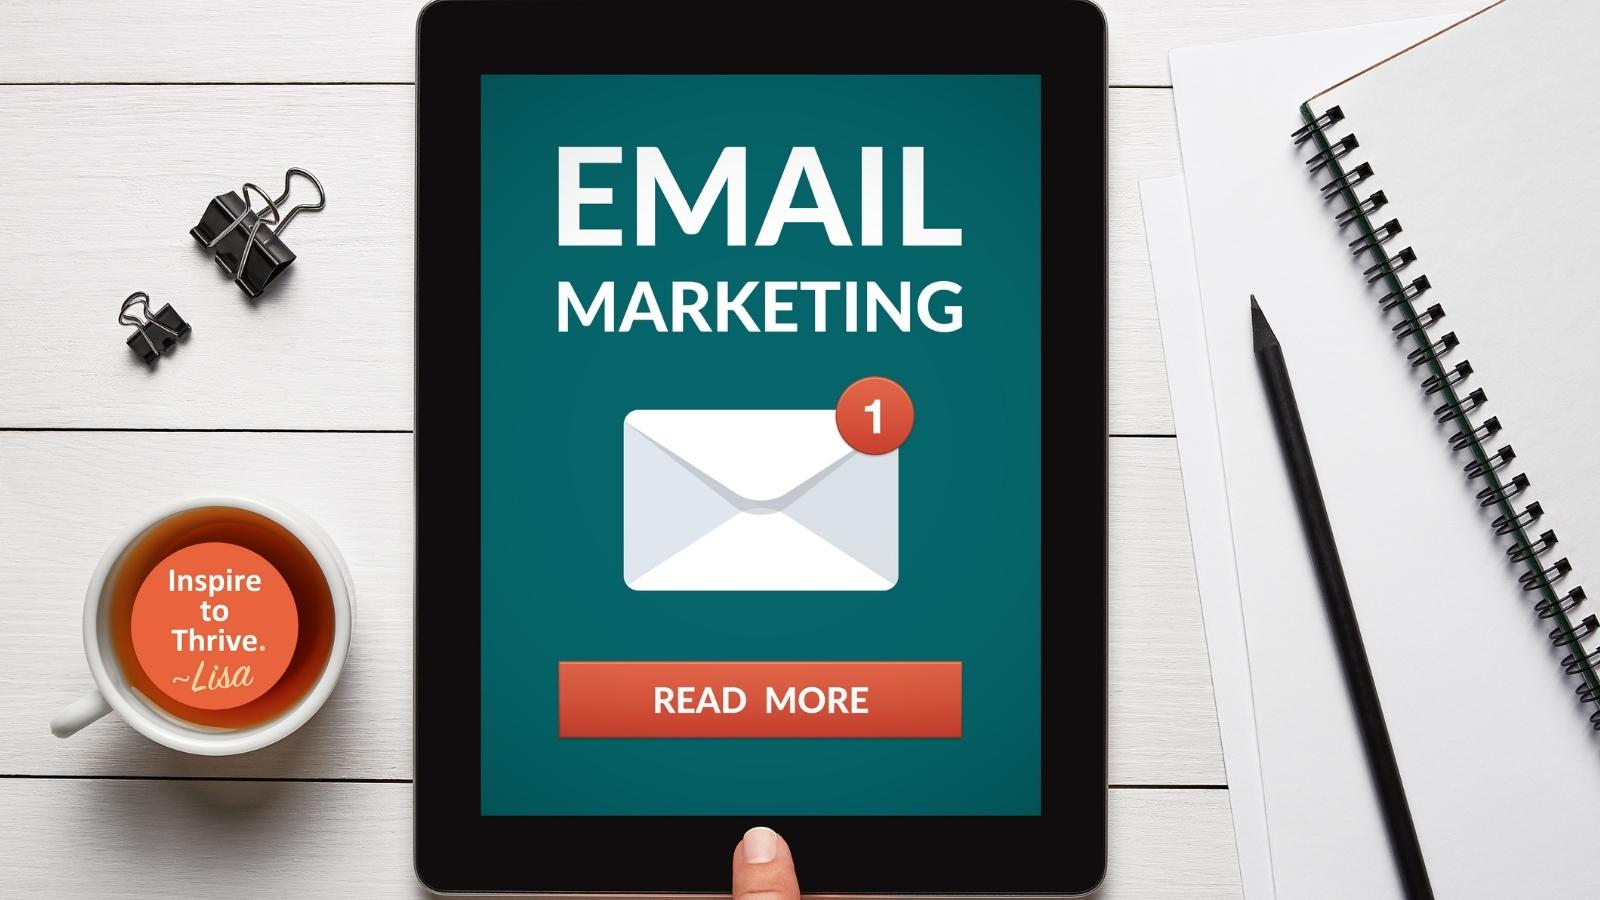 email marketing for a nonprofit buisness